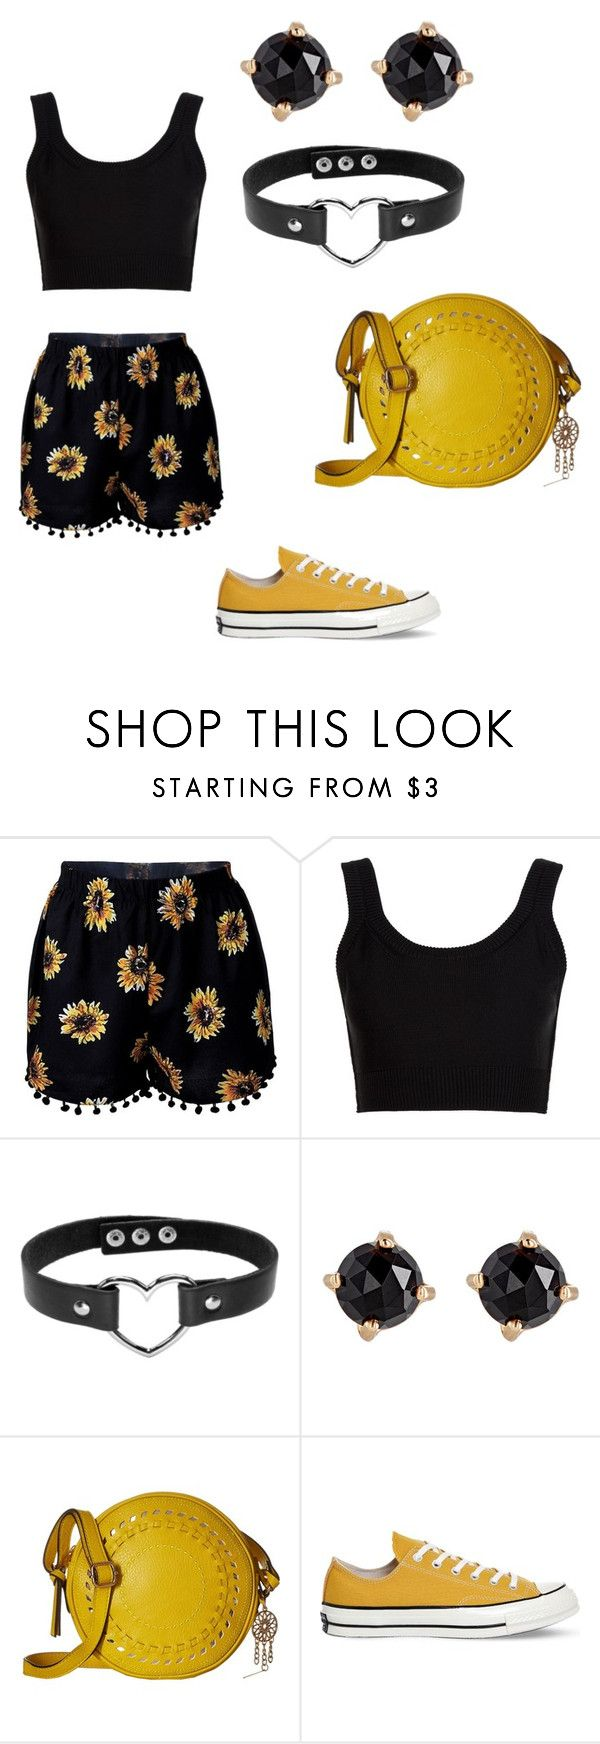 """Sunflower fields"" by andrea-blackman ❤ liked on Polyvore featuring Calvin Klein Collection, Irene Neuwirth, Jessica Simpson and Converse"